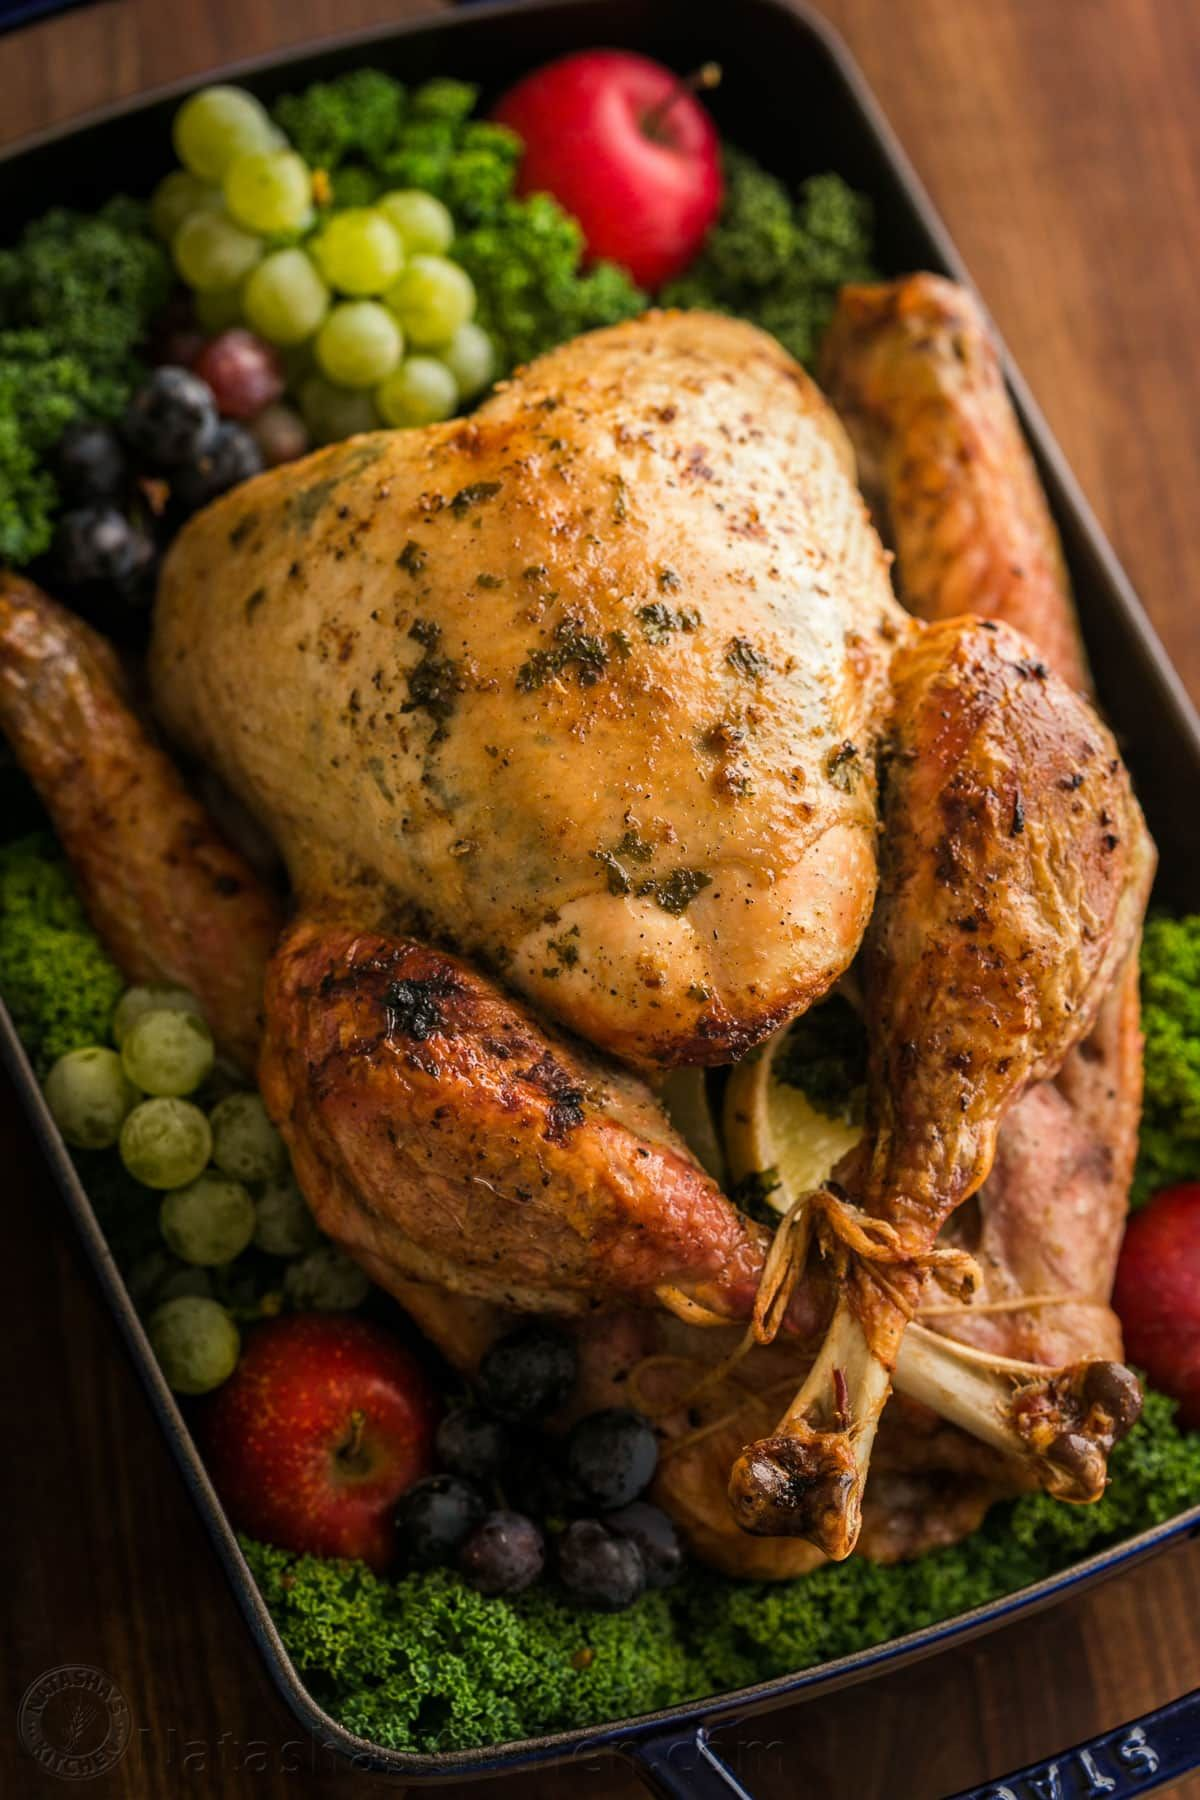 Making A Juicy And Flavorful Thanksgiving Turkey Is Easier Than